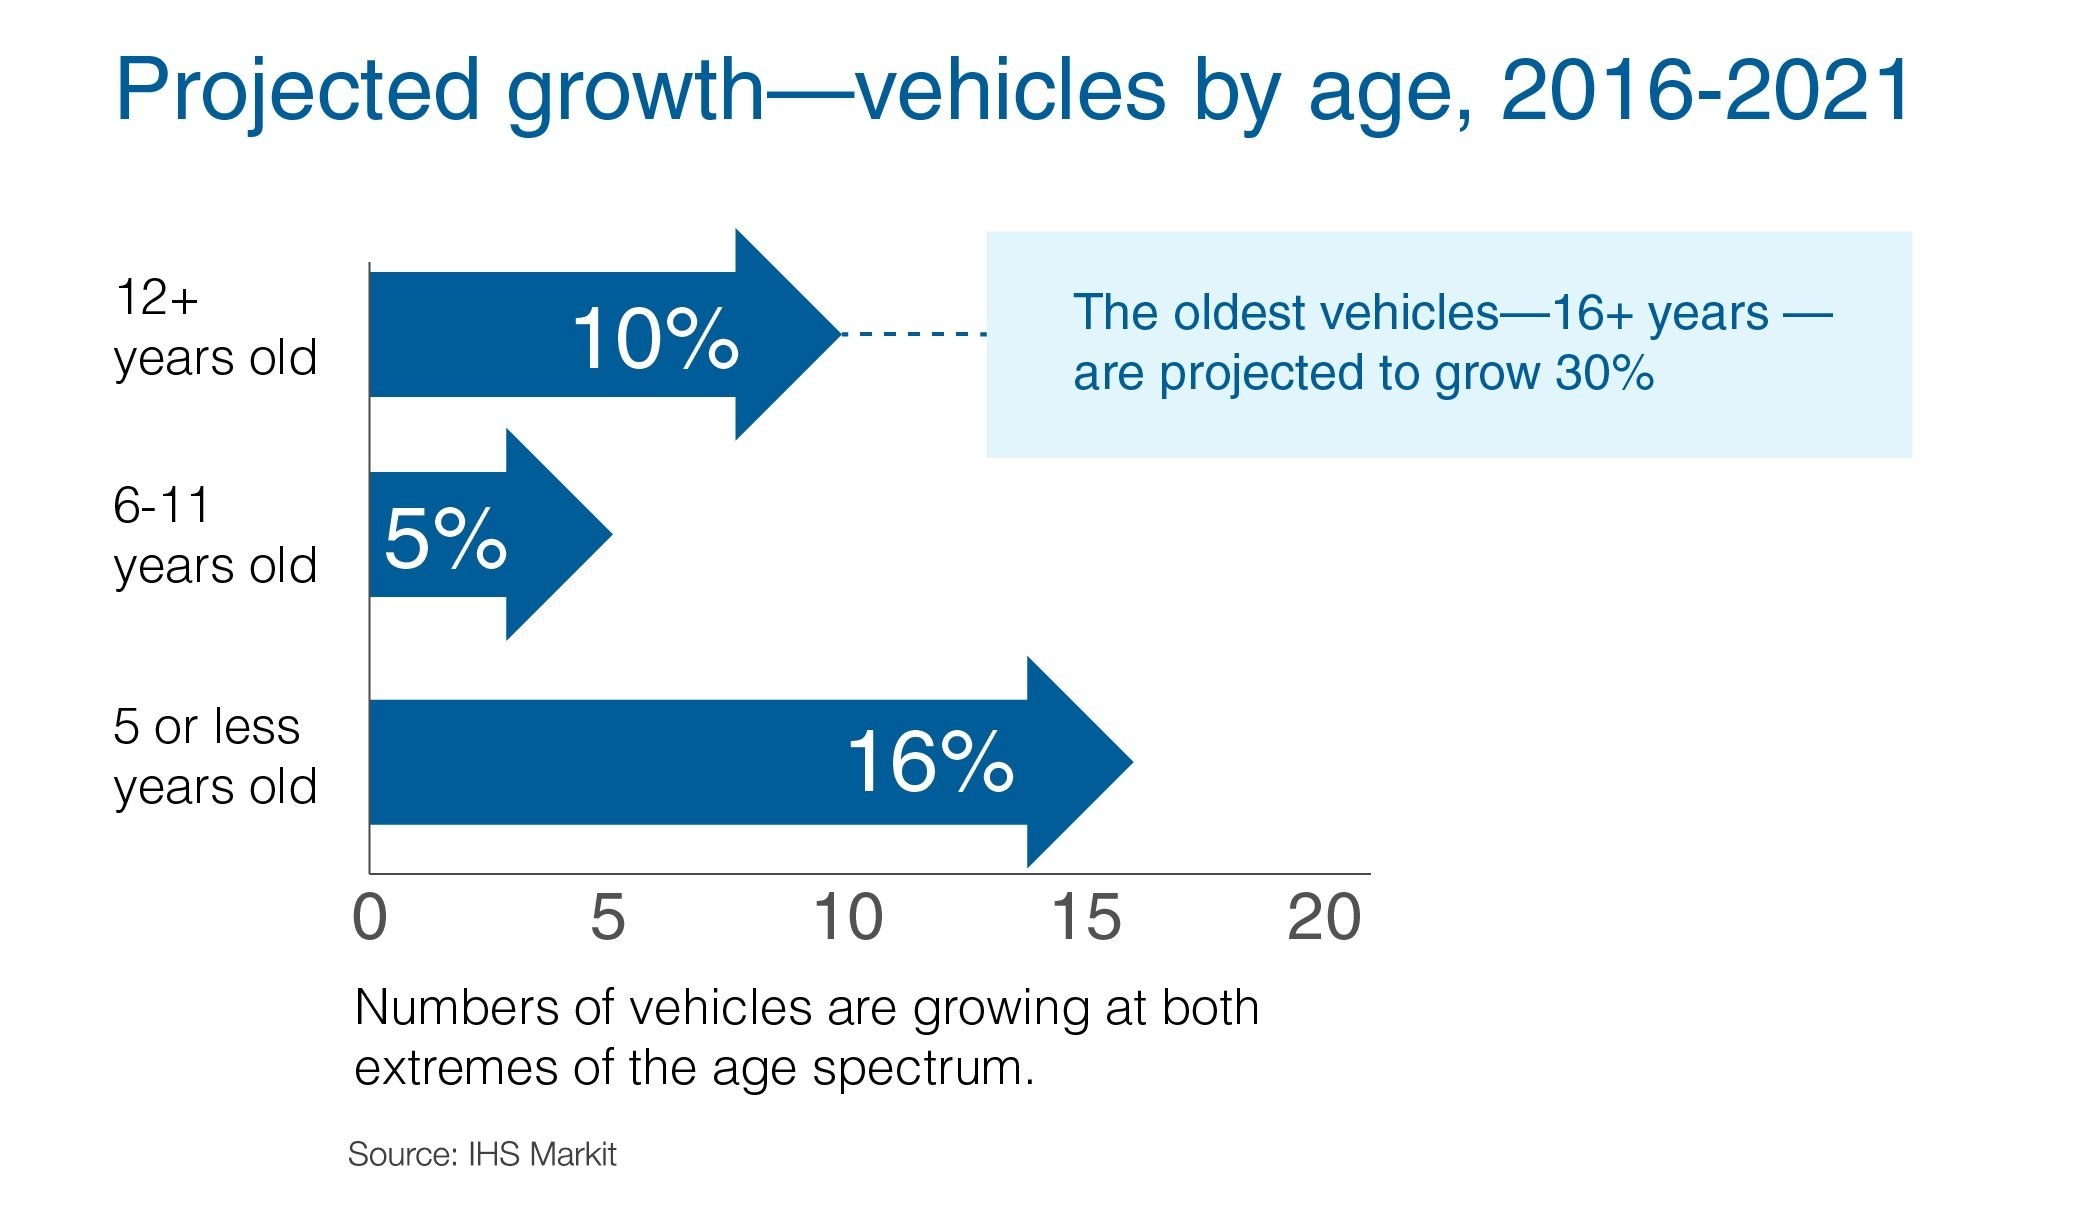 Projected growth vehicles by age